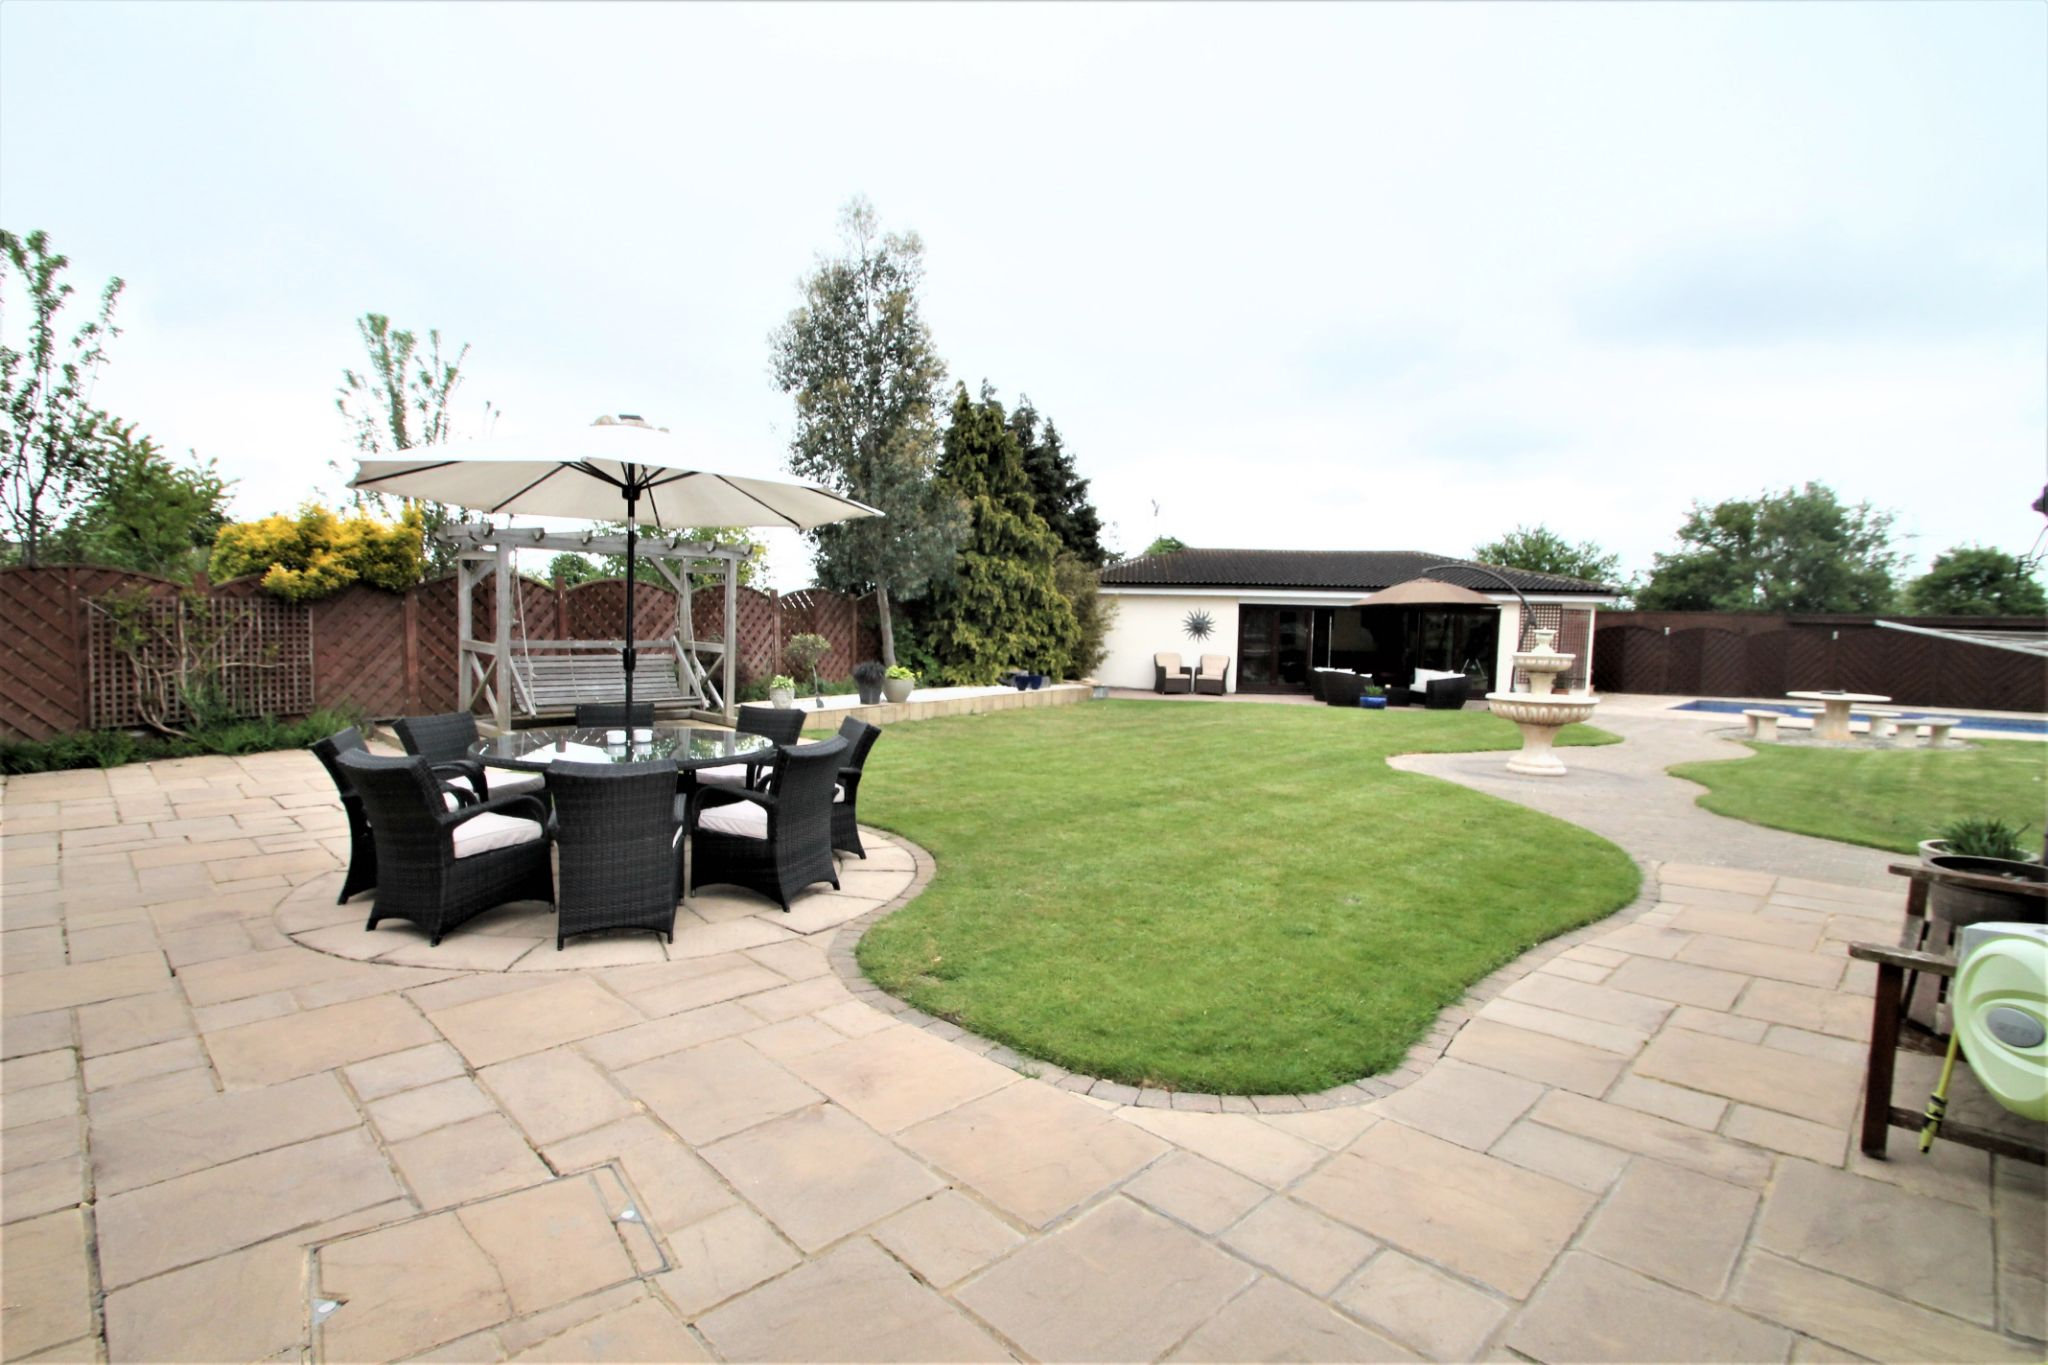 5 Bedroom Detached House For Sale - Garden